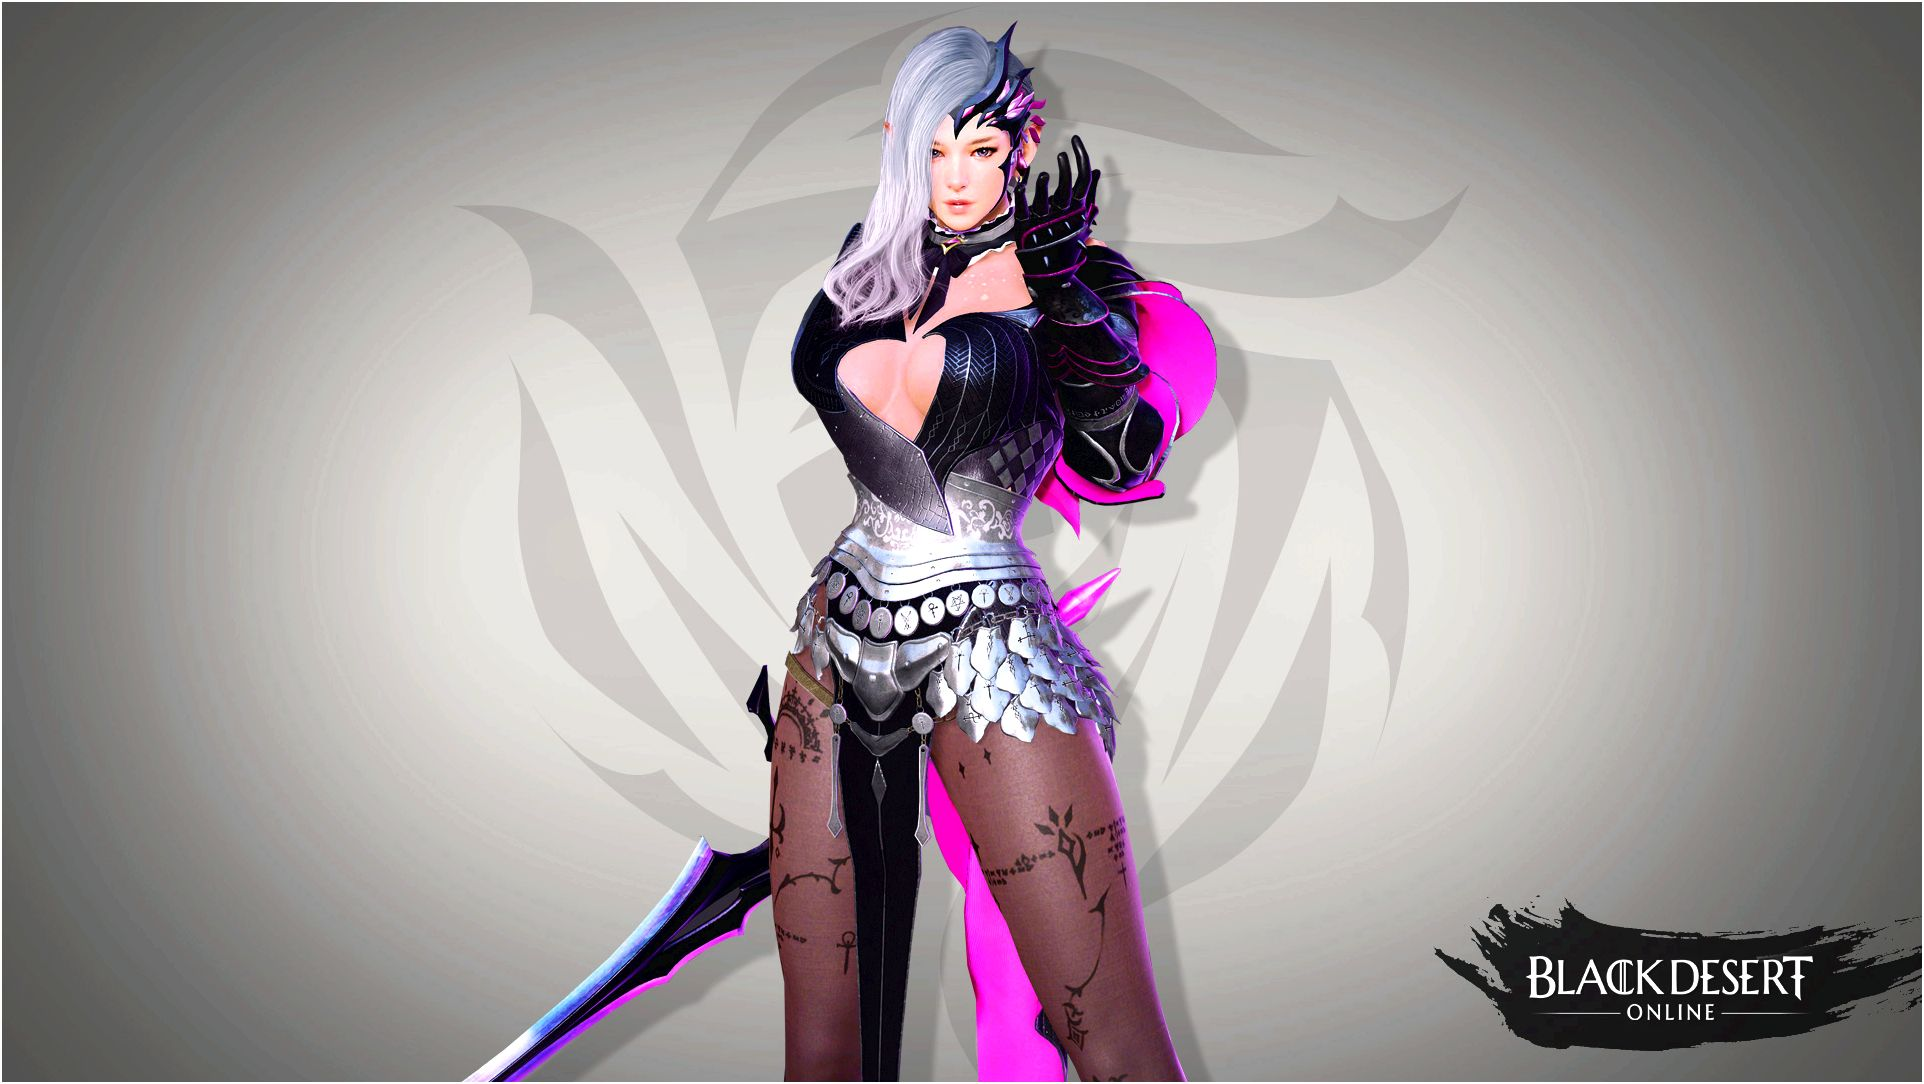 Black desert online · appid: 582660 · steam database Blackstone weapon                                                     UPGRADE_ARMOR             Upgrade